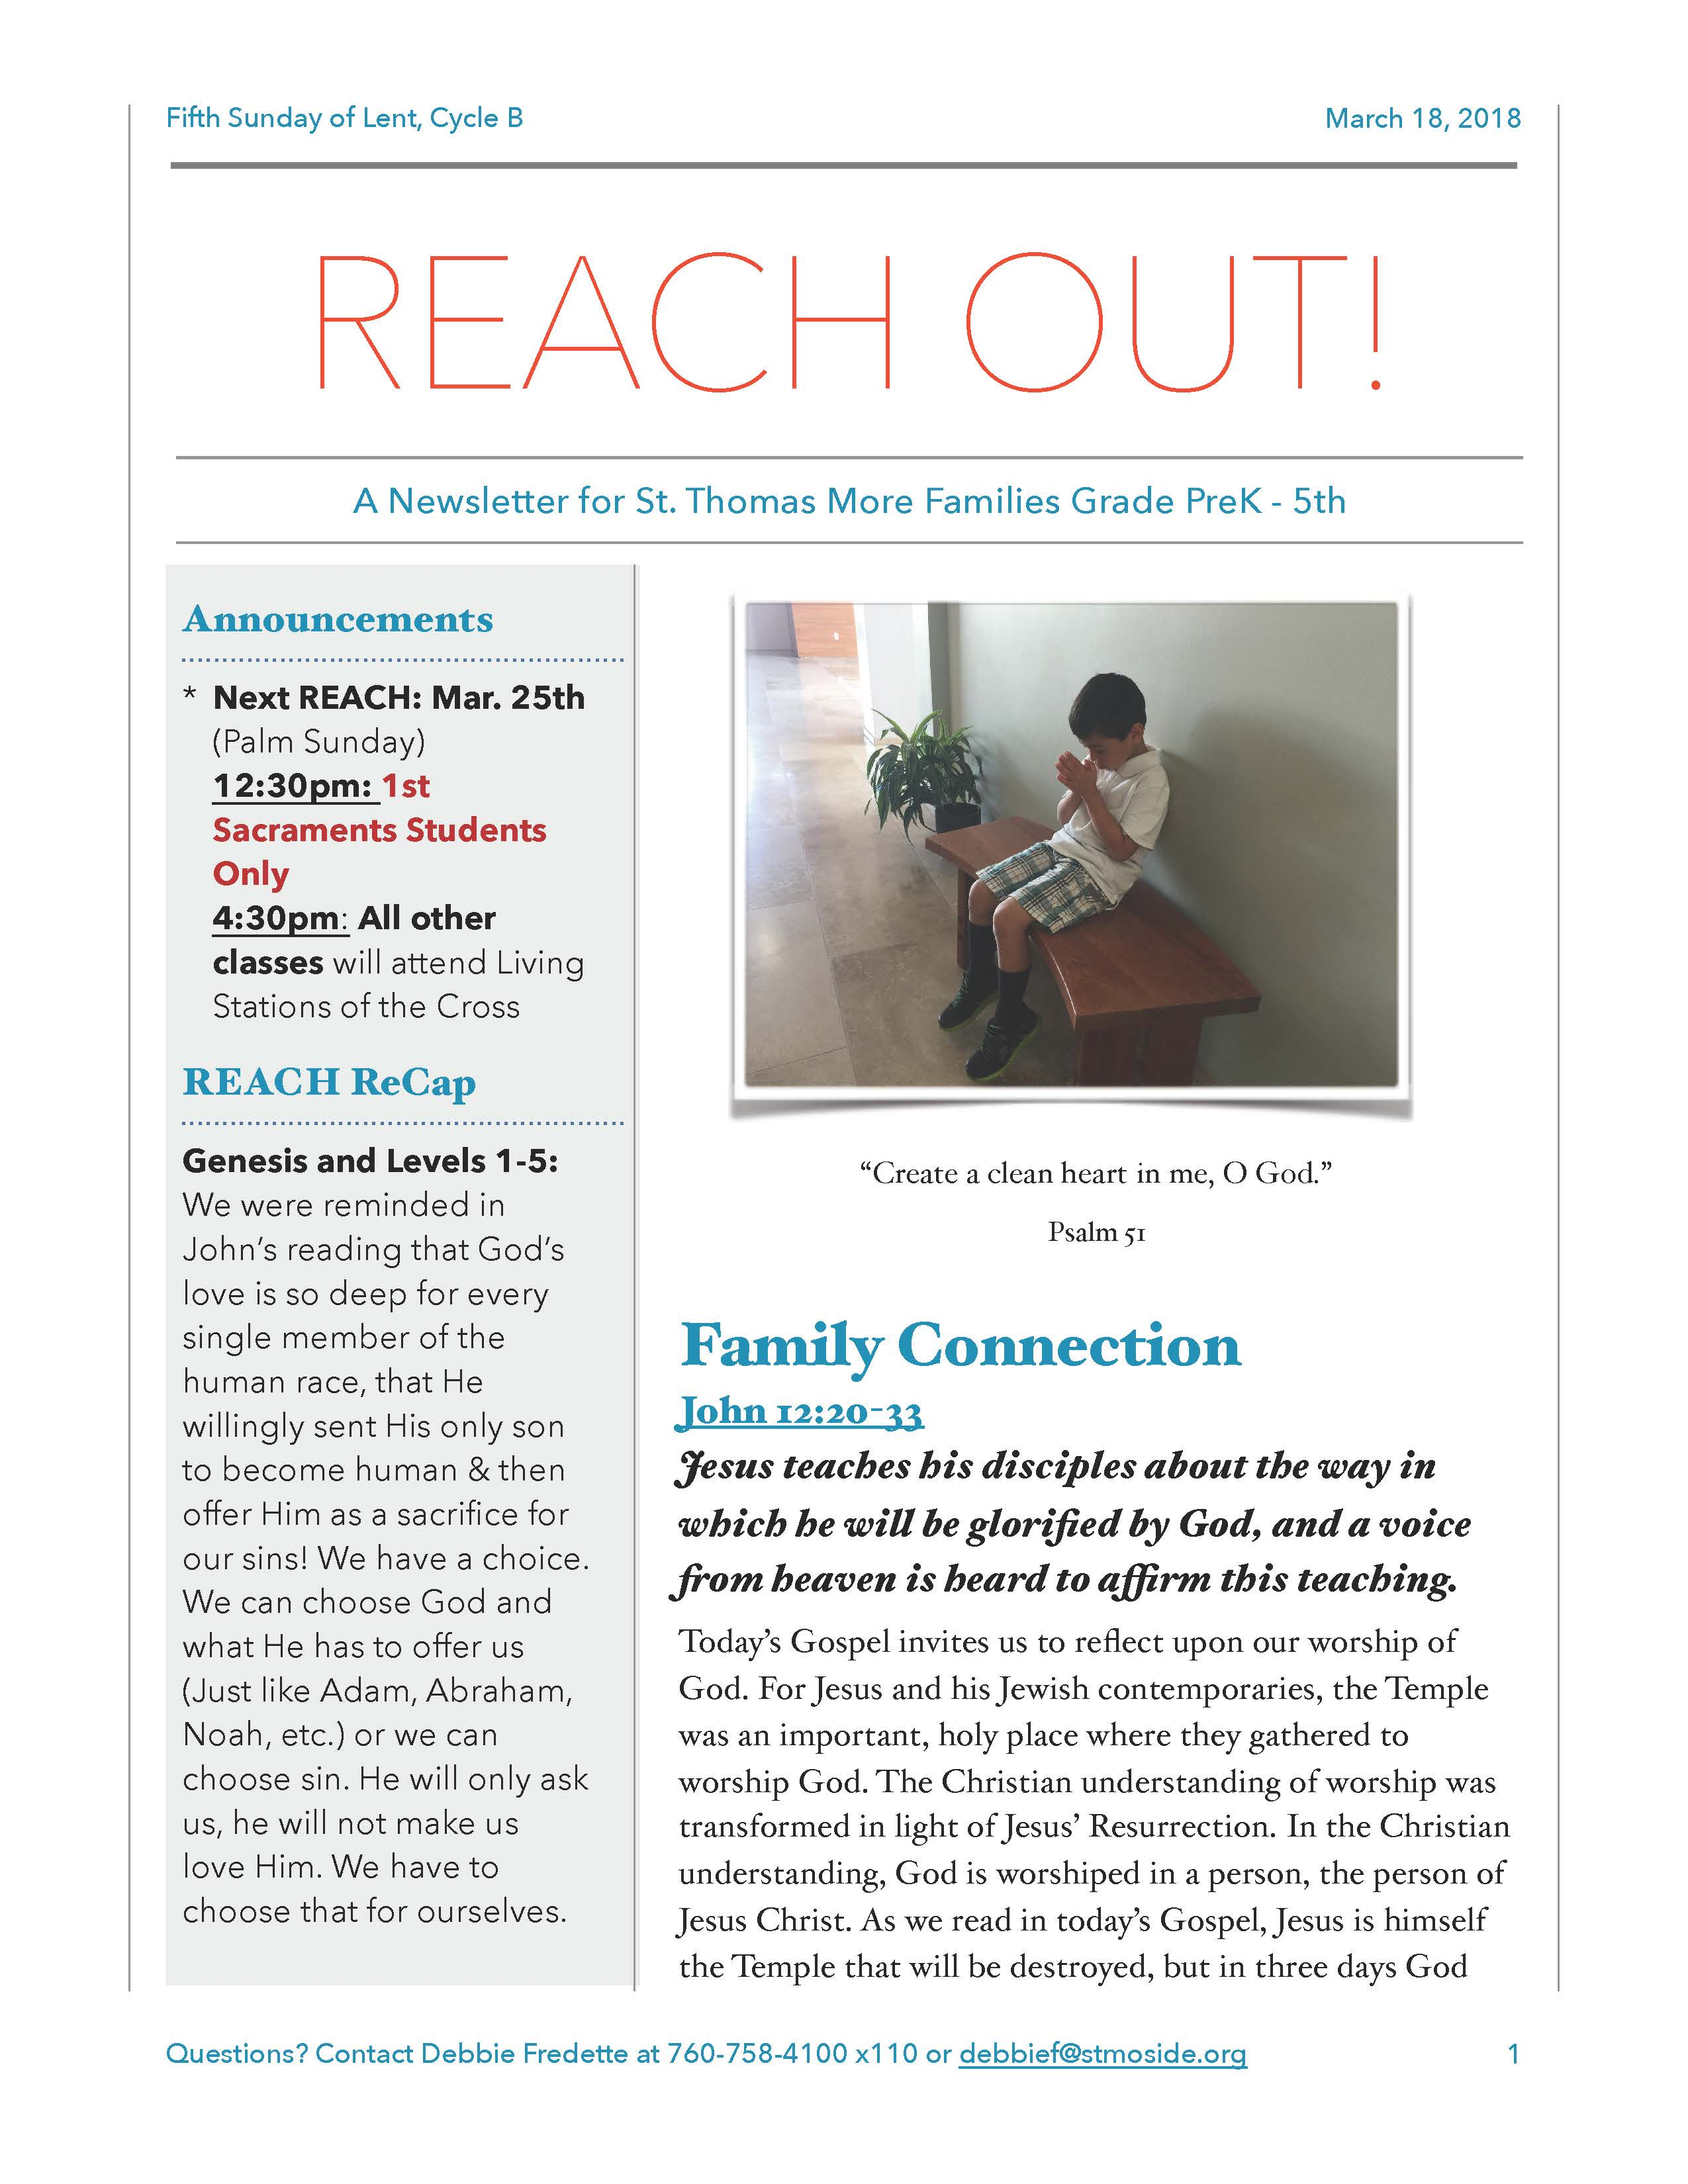 REACH Out Newsletter March 18, 2018